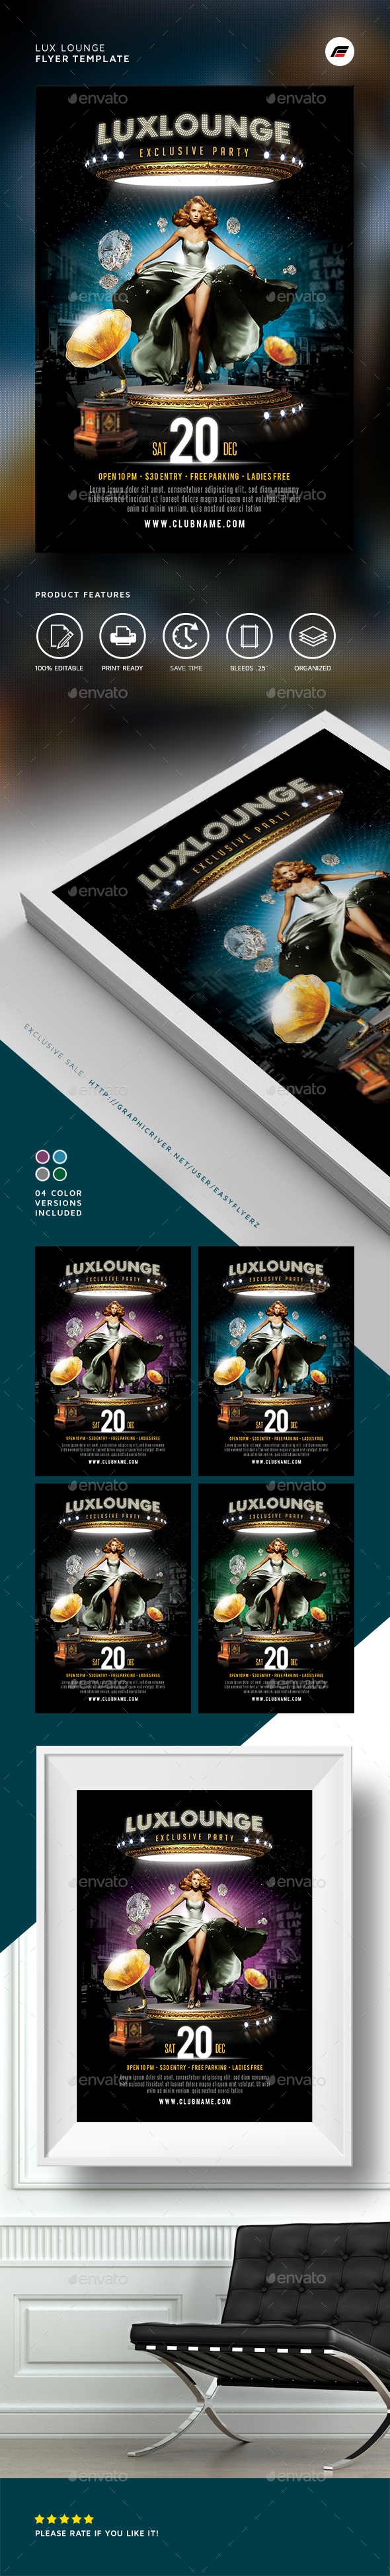 Lux Lounge Flyer Template - Events Flyers